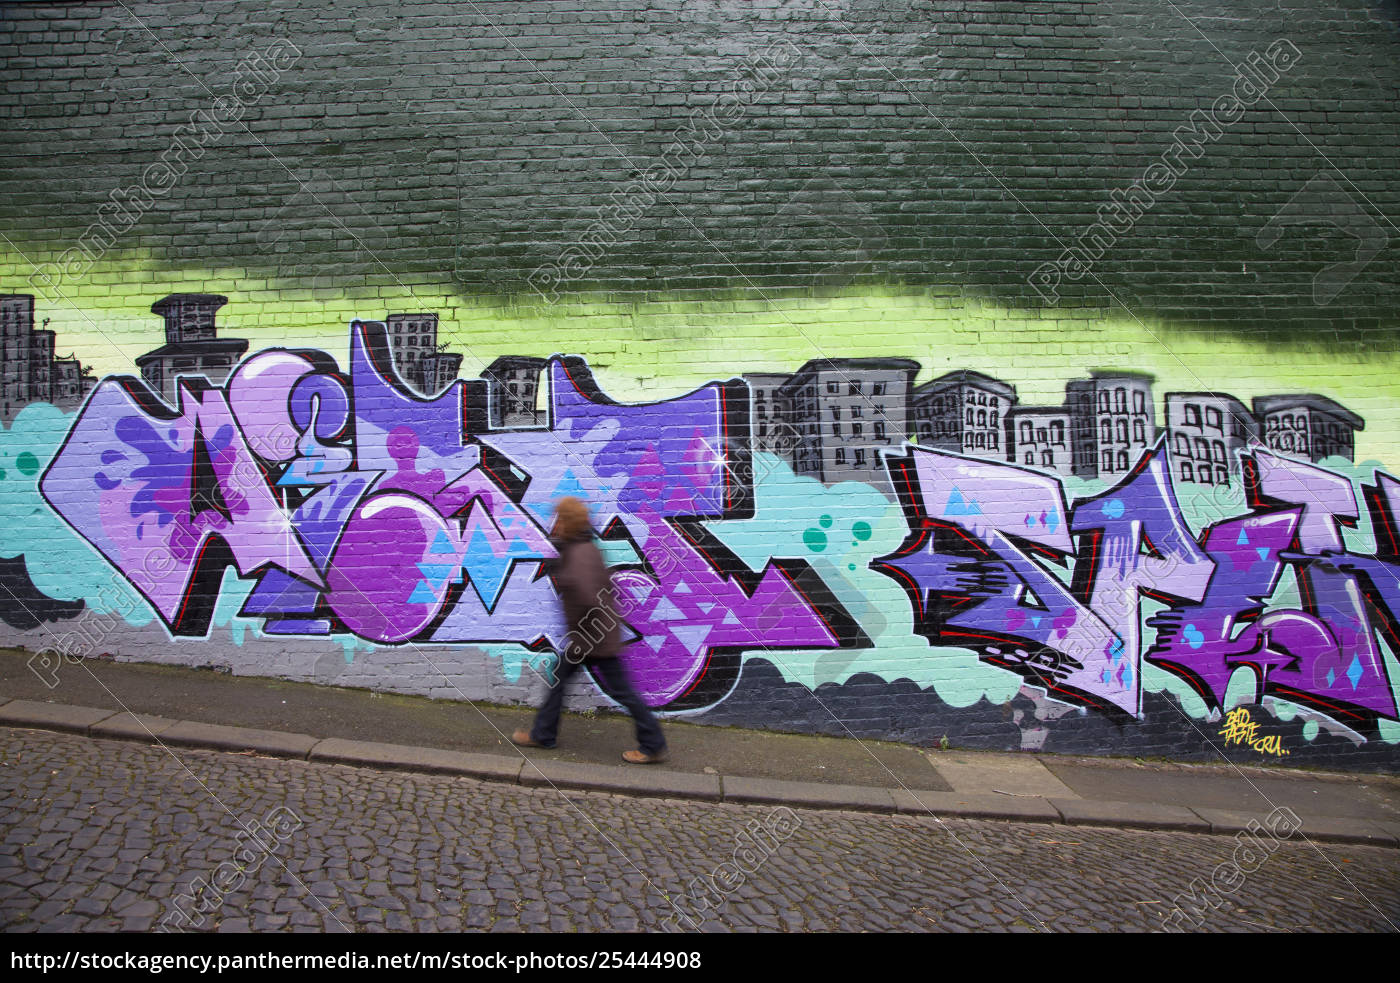 Rights Managed Image 25444908 A Pedestrian Walking Along A Graffiti Covered Wall